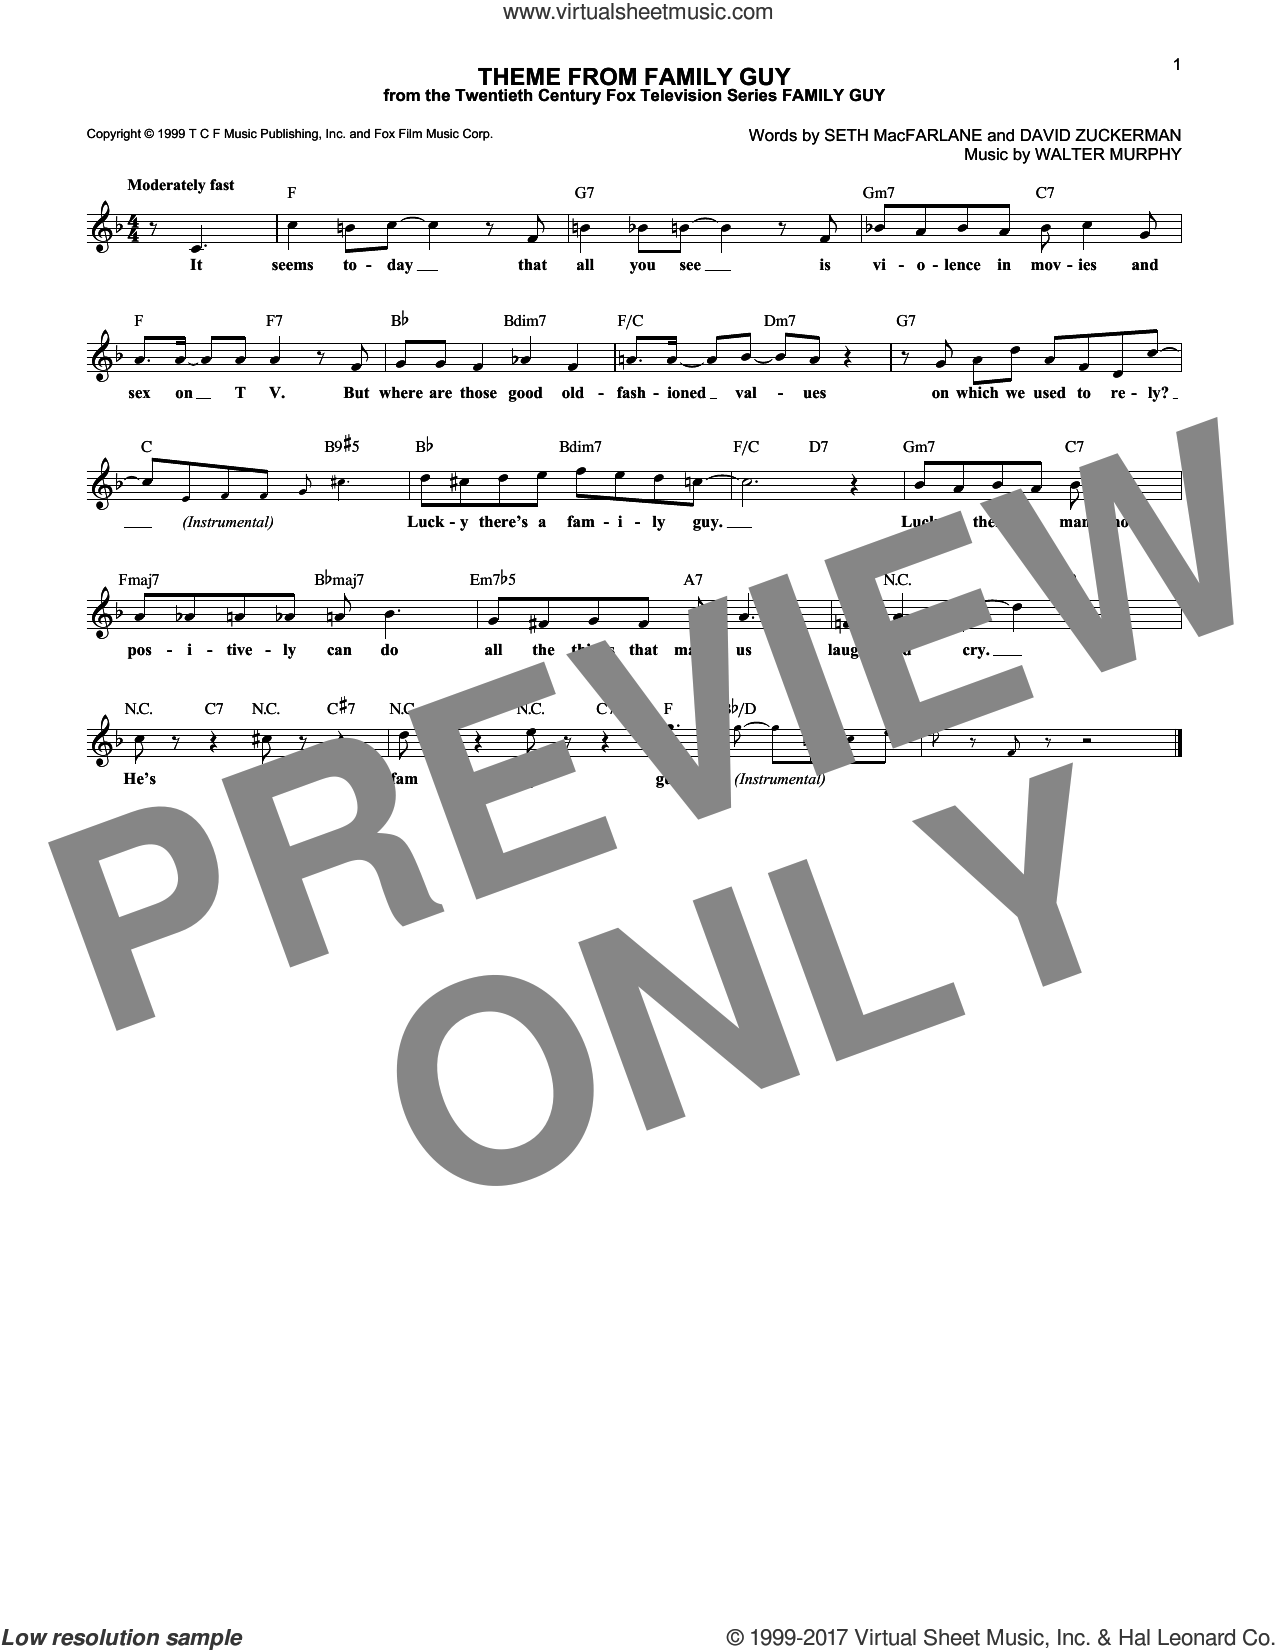 Theme From Family Guy sheet music for voice and other instruments (fake book) by Walter Murphy and David Zuckerman. Score Image Preview.